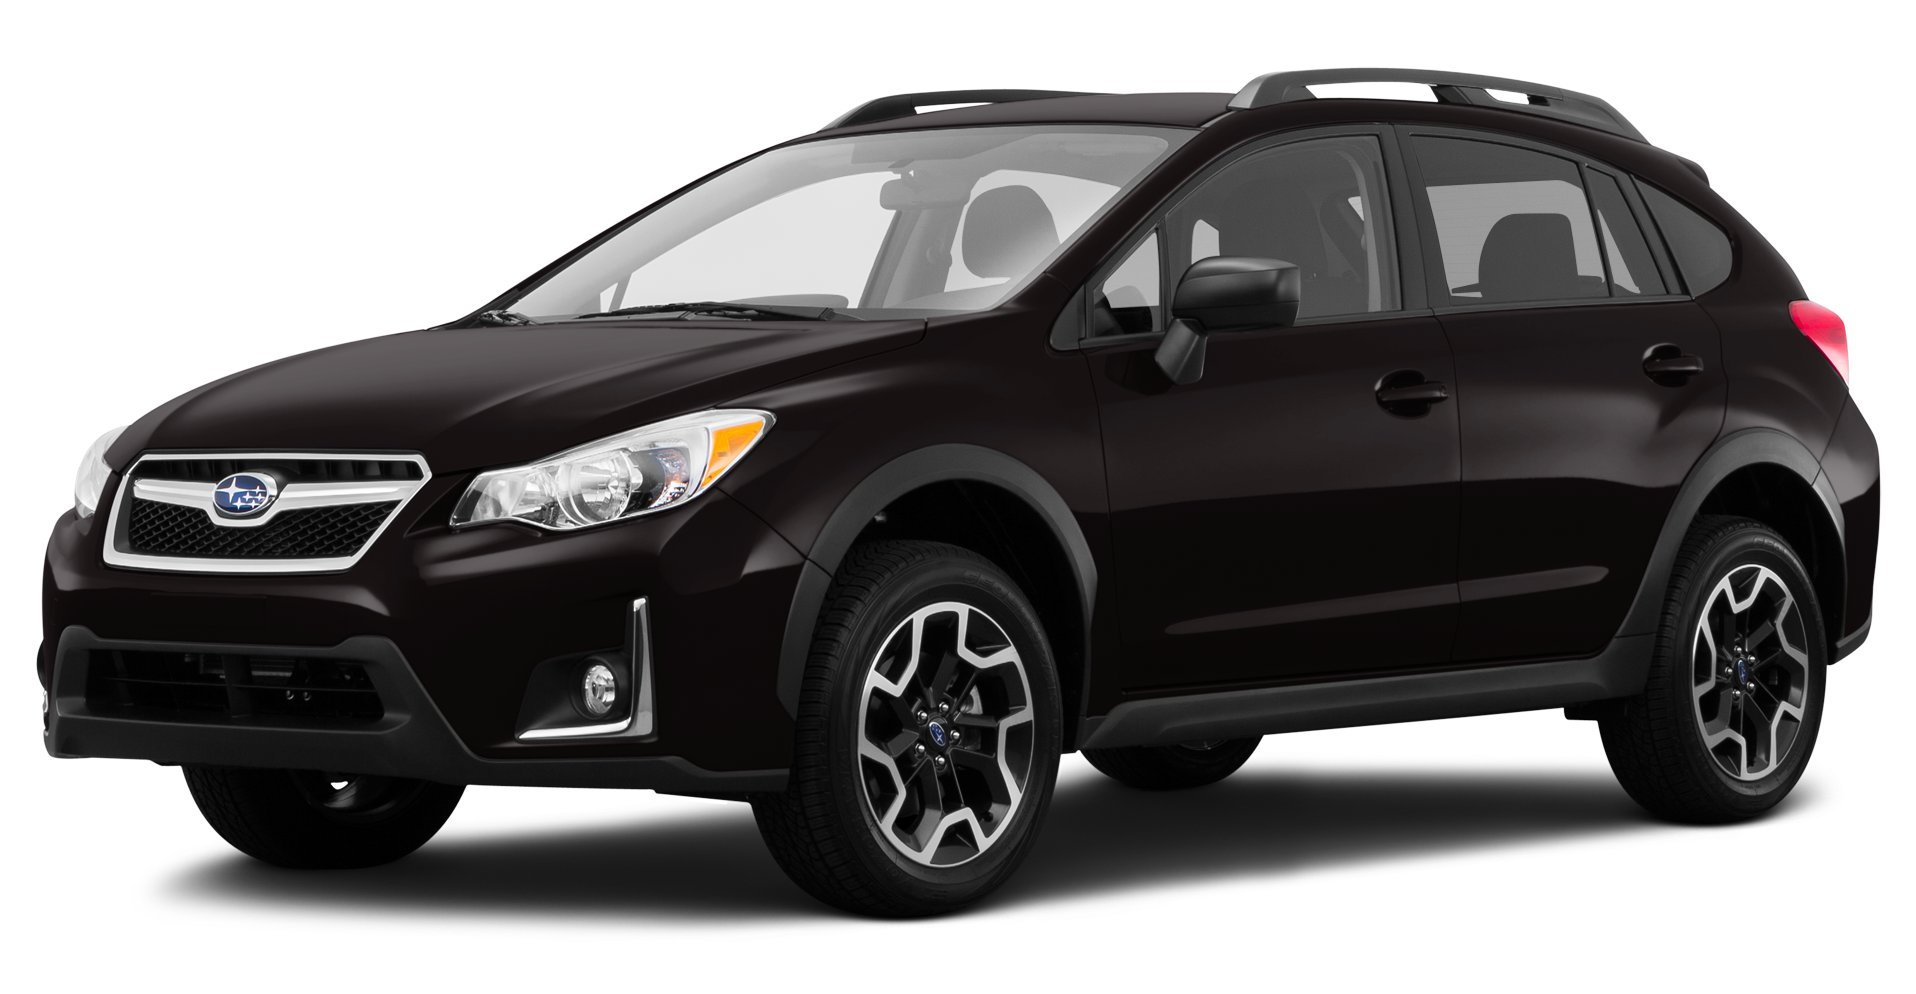 2017 subaru crosstrek reviews images and specs vehicles. Black Bedroom Furniture Sets. Home Design Ideas